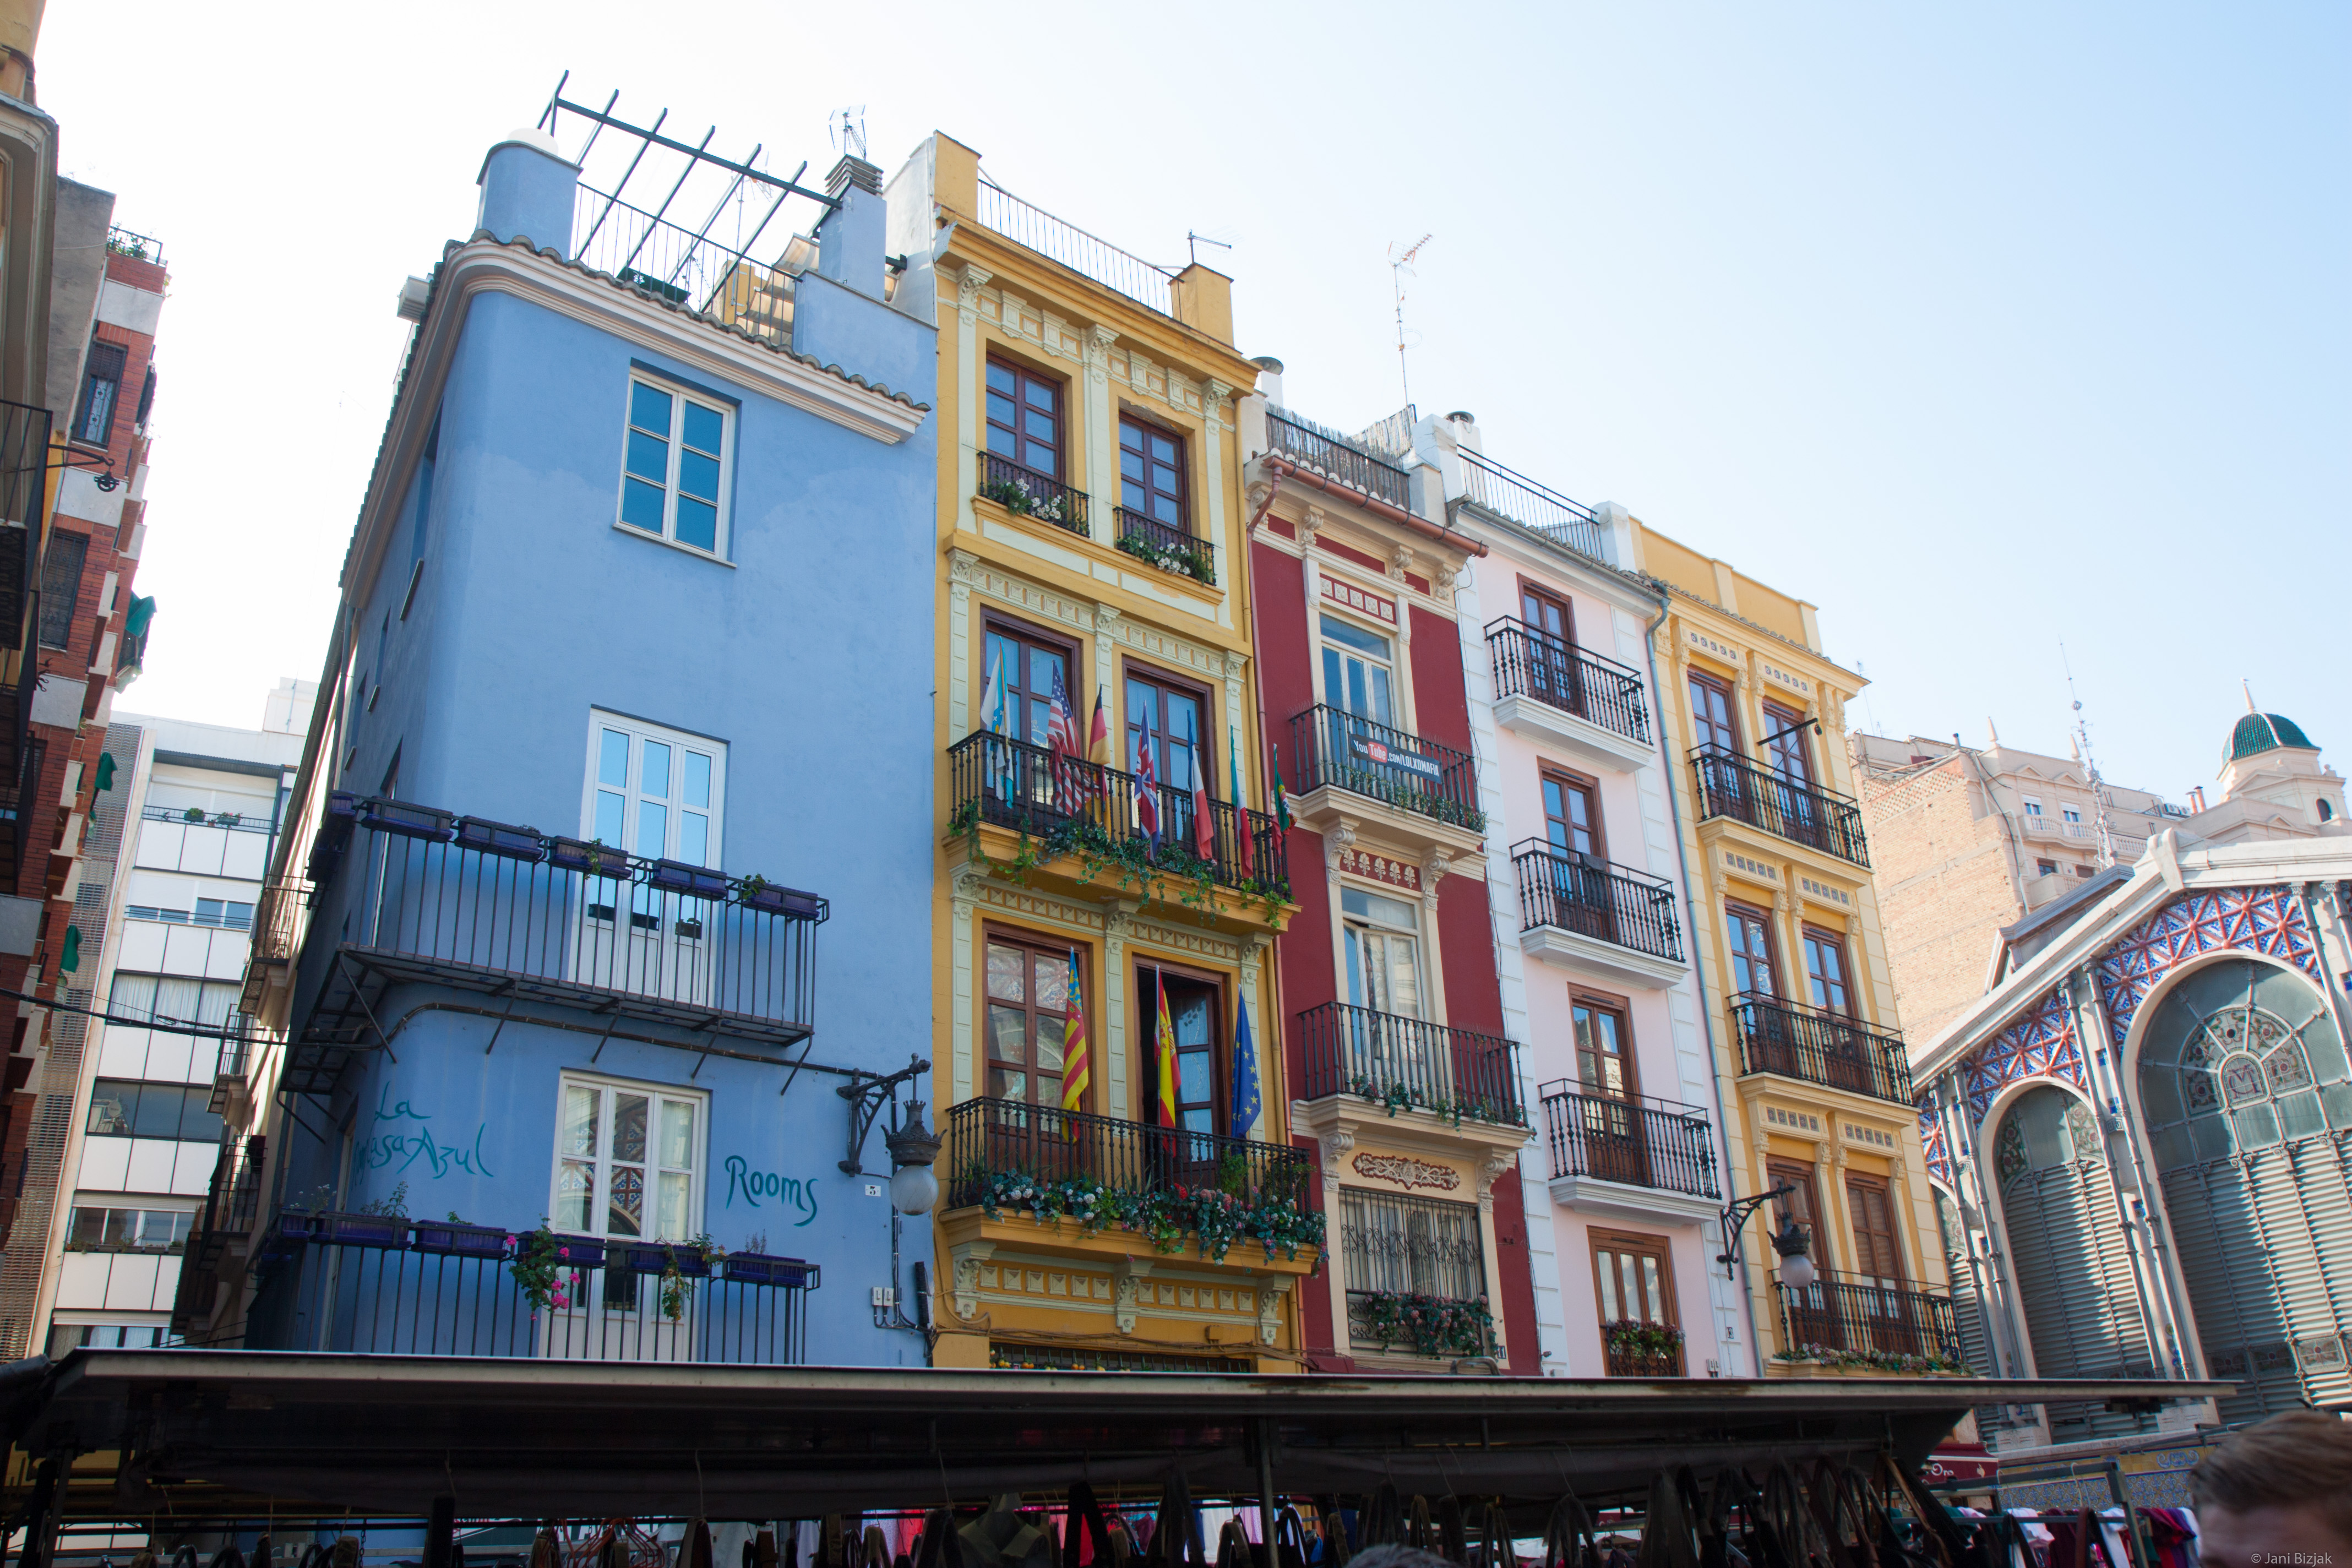 Some colourful buildings.